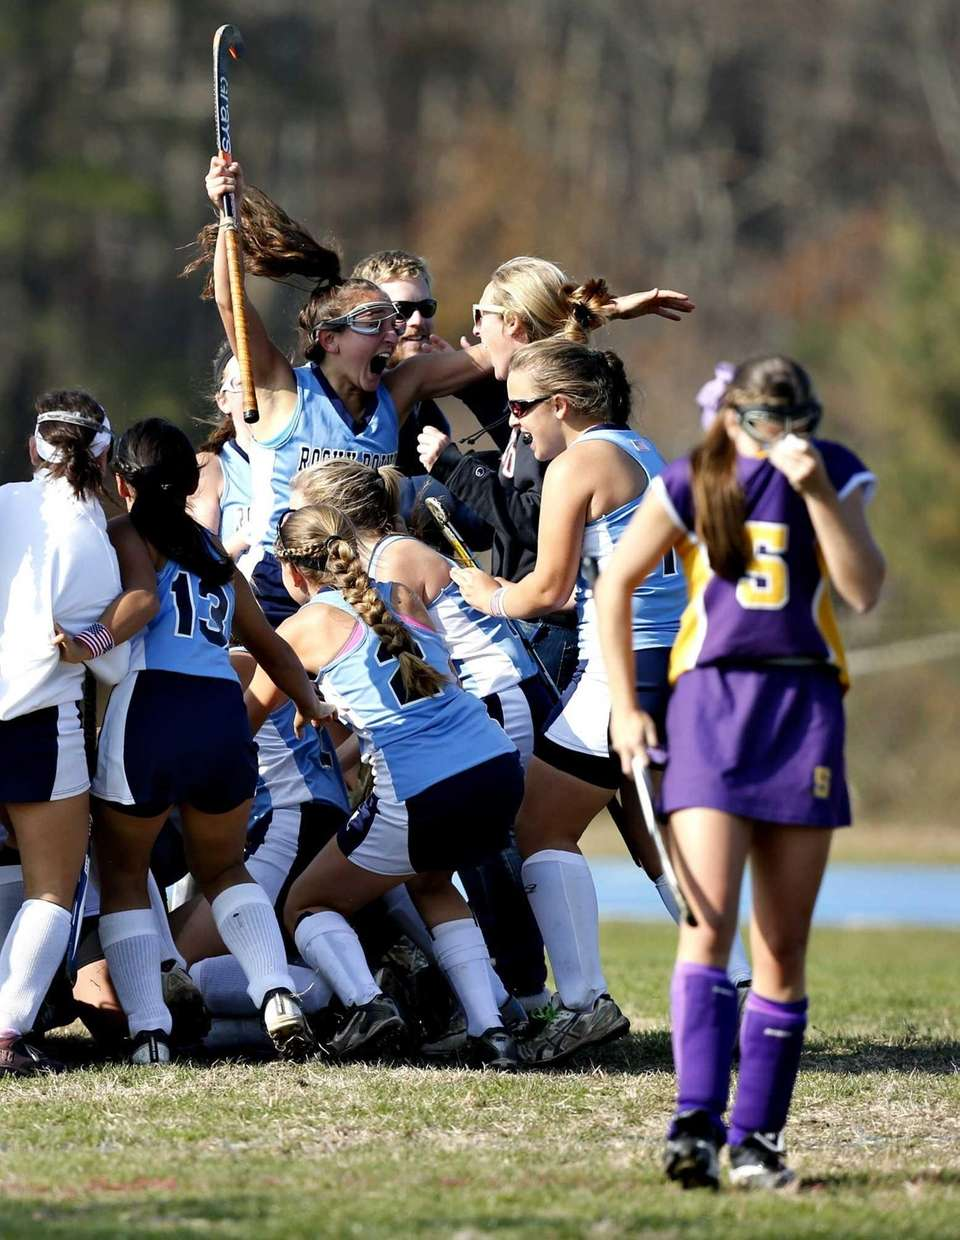 Rocky Point's field hockey team celebrates victory as